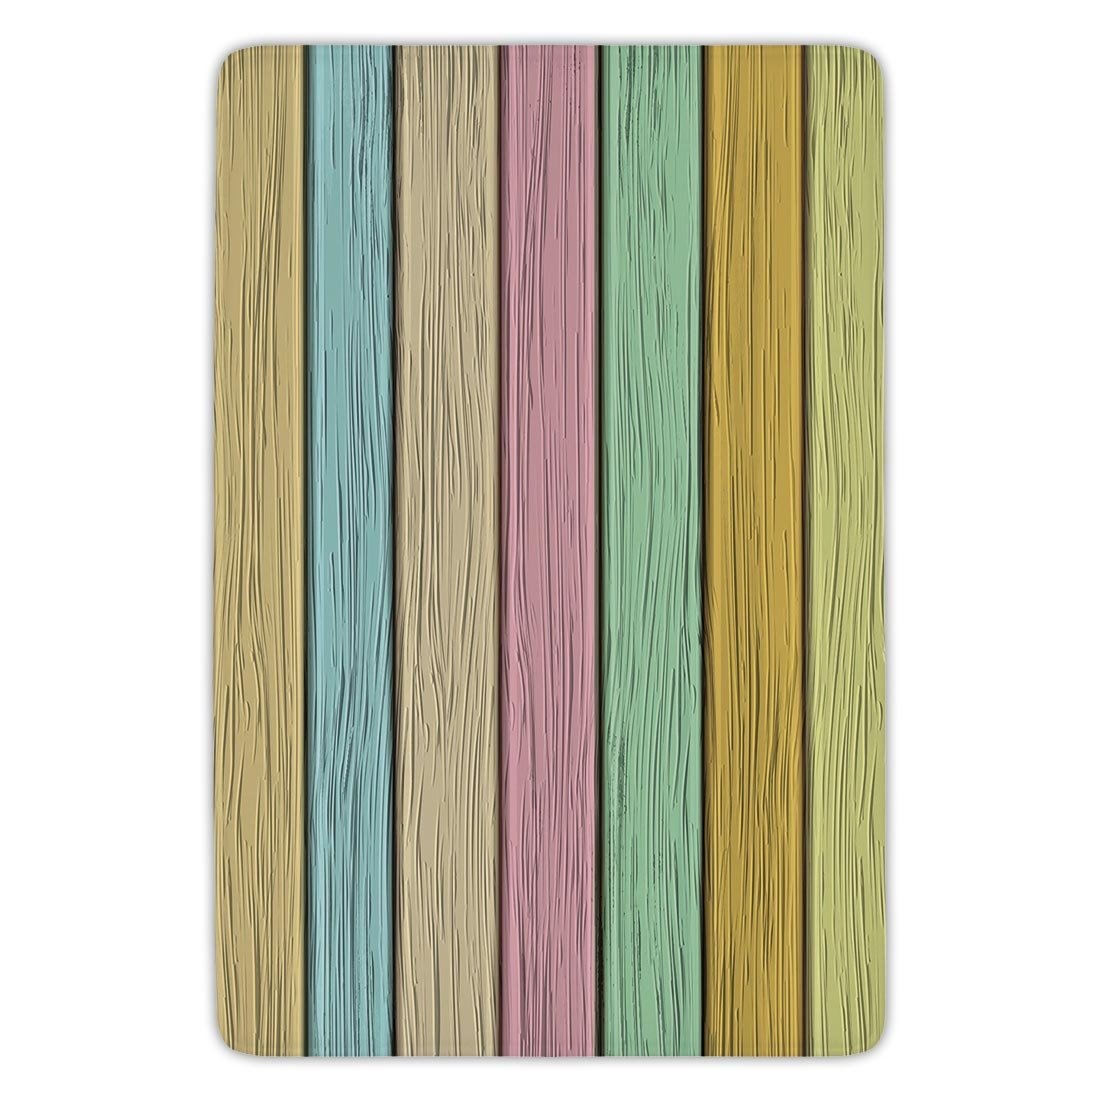 Bathroom Bath Rug Kitchen Floor Mat Carpet,Pastel,Colorful Old Wooden Planks Timber Texture Rustic Farmhouse Country Home Decor Print Decorative,Multicolor,Flannel Microfiber Non-slip Soft Absorbent